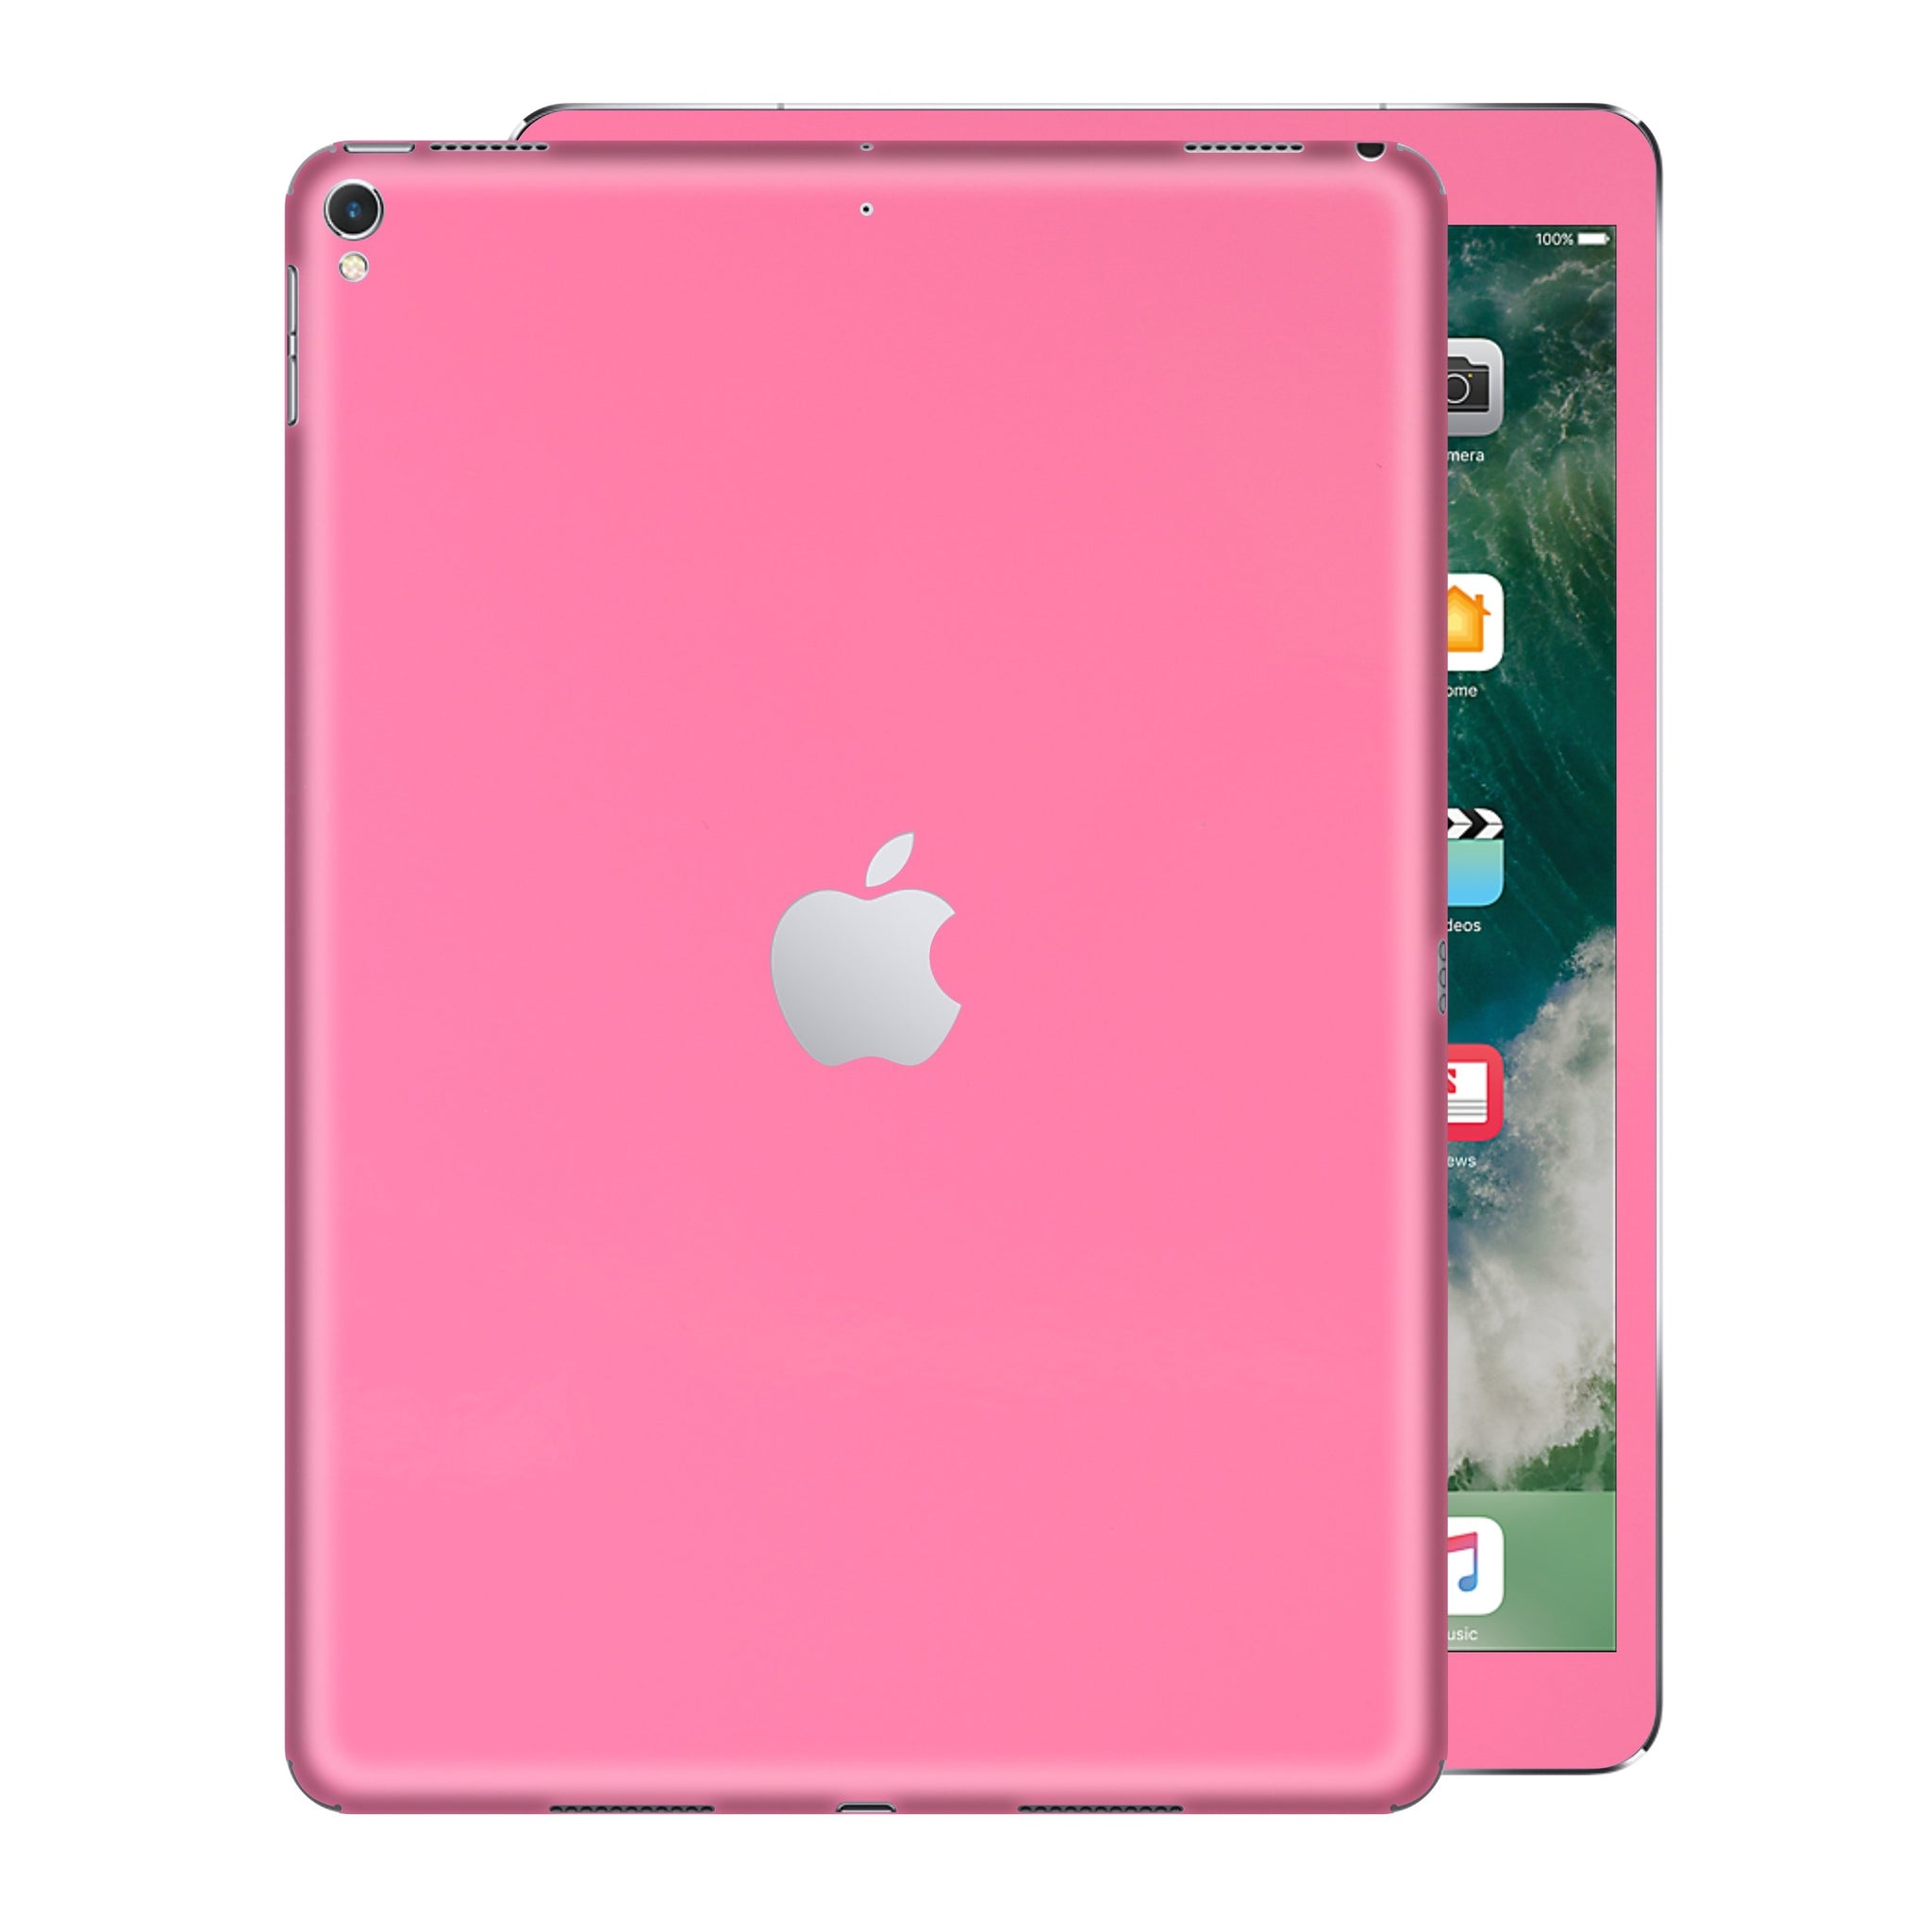 iPad PRO 12.9 inch 2017 Matt Matte 3M PINK Skin Wrap Sticker Decal Cover Protector by EasySkinz